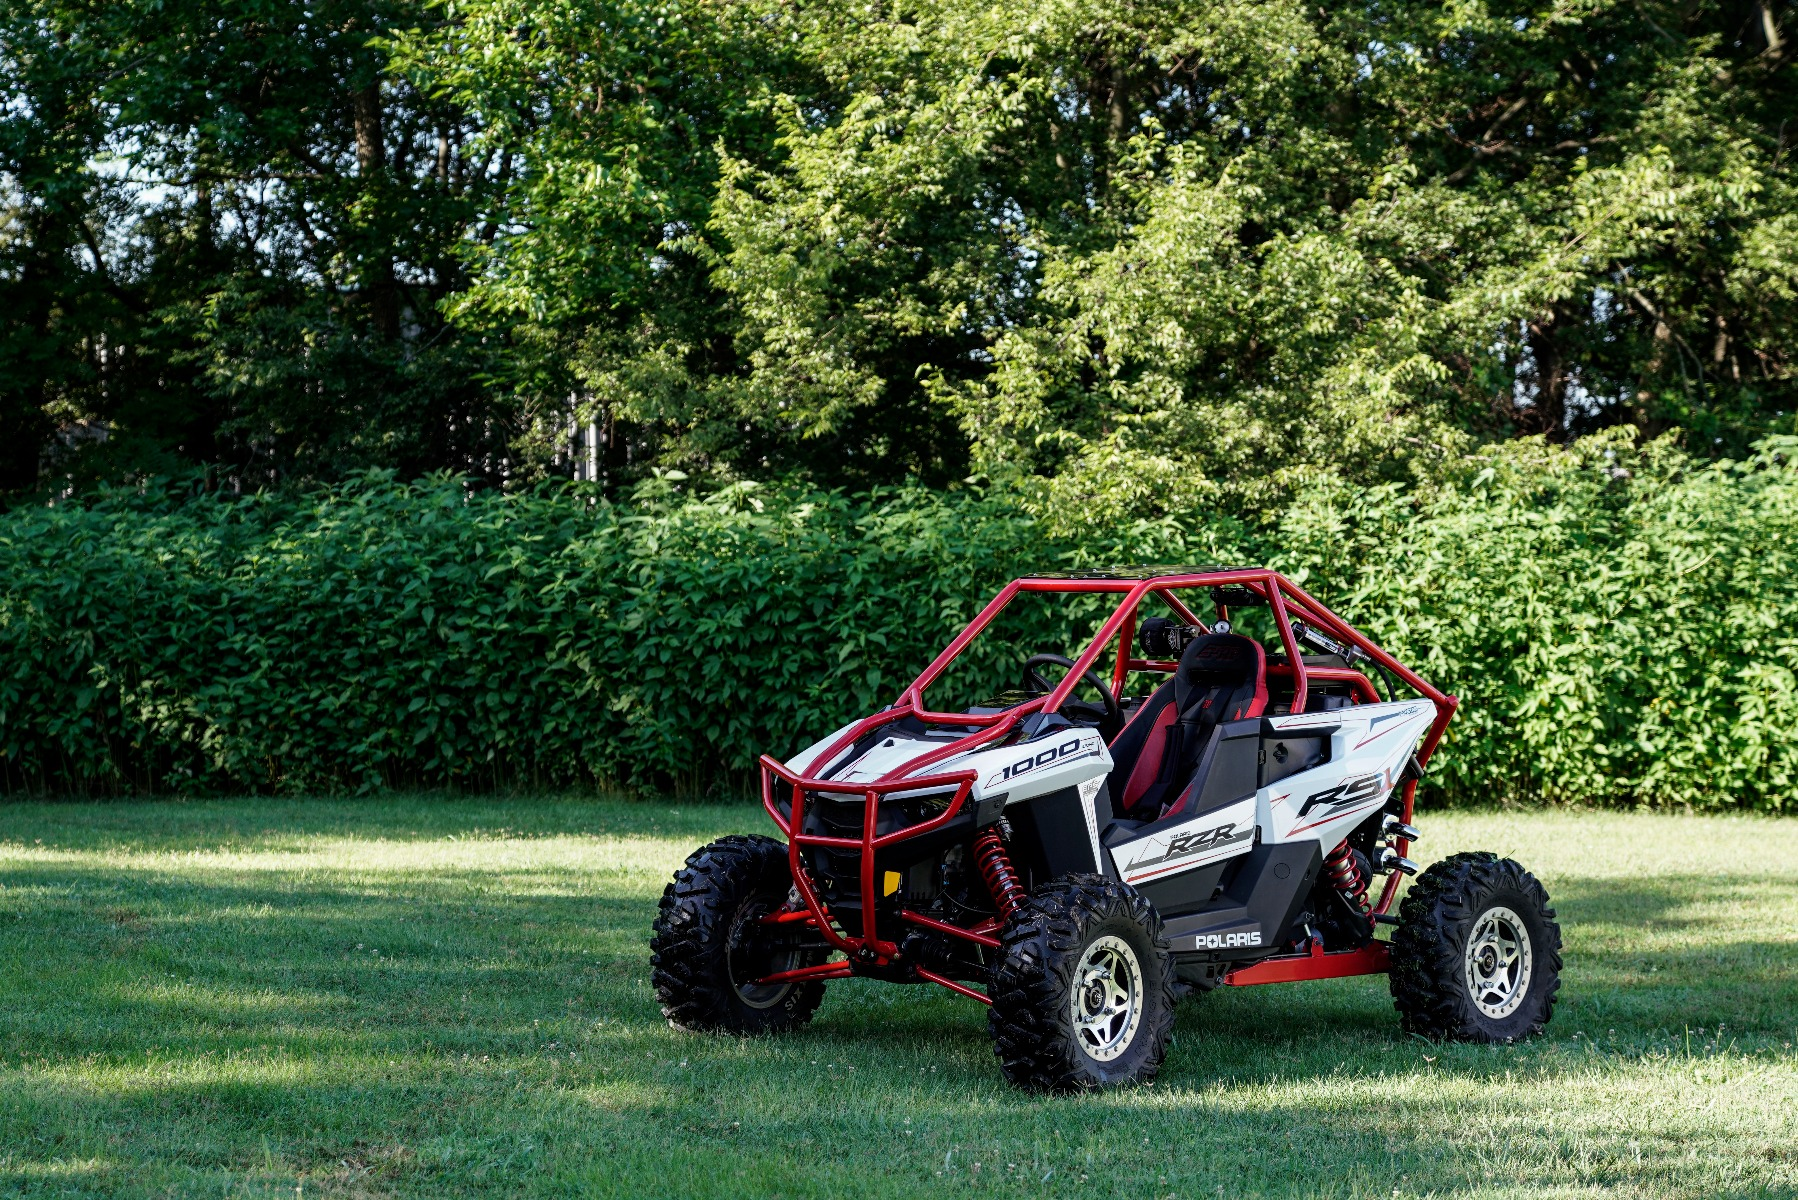 Polaris RZR RS1 Roll Cage in grass Image 2